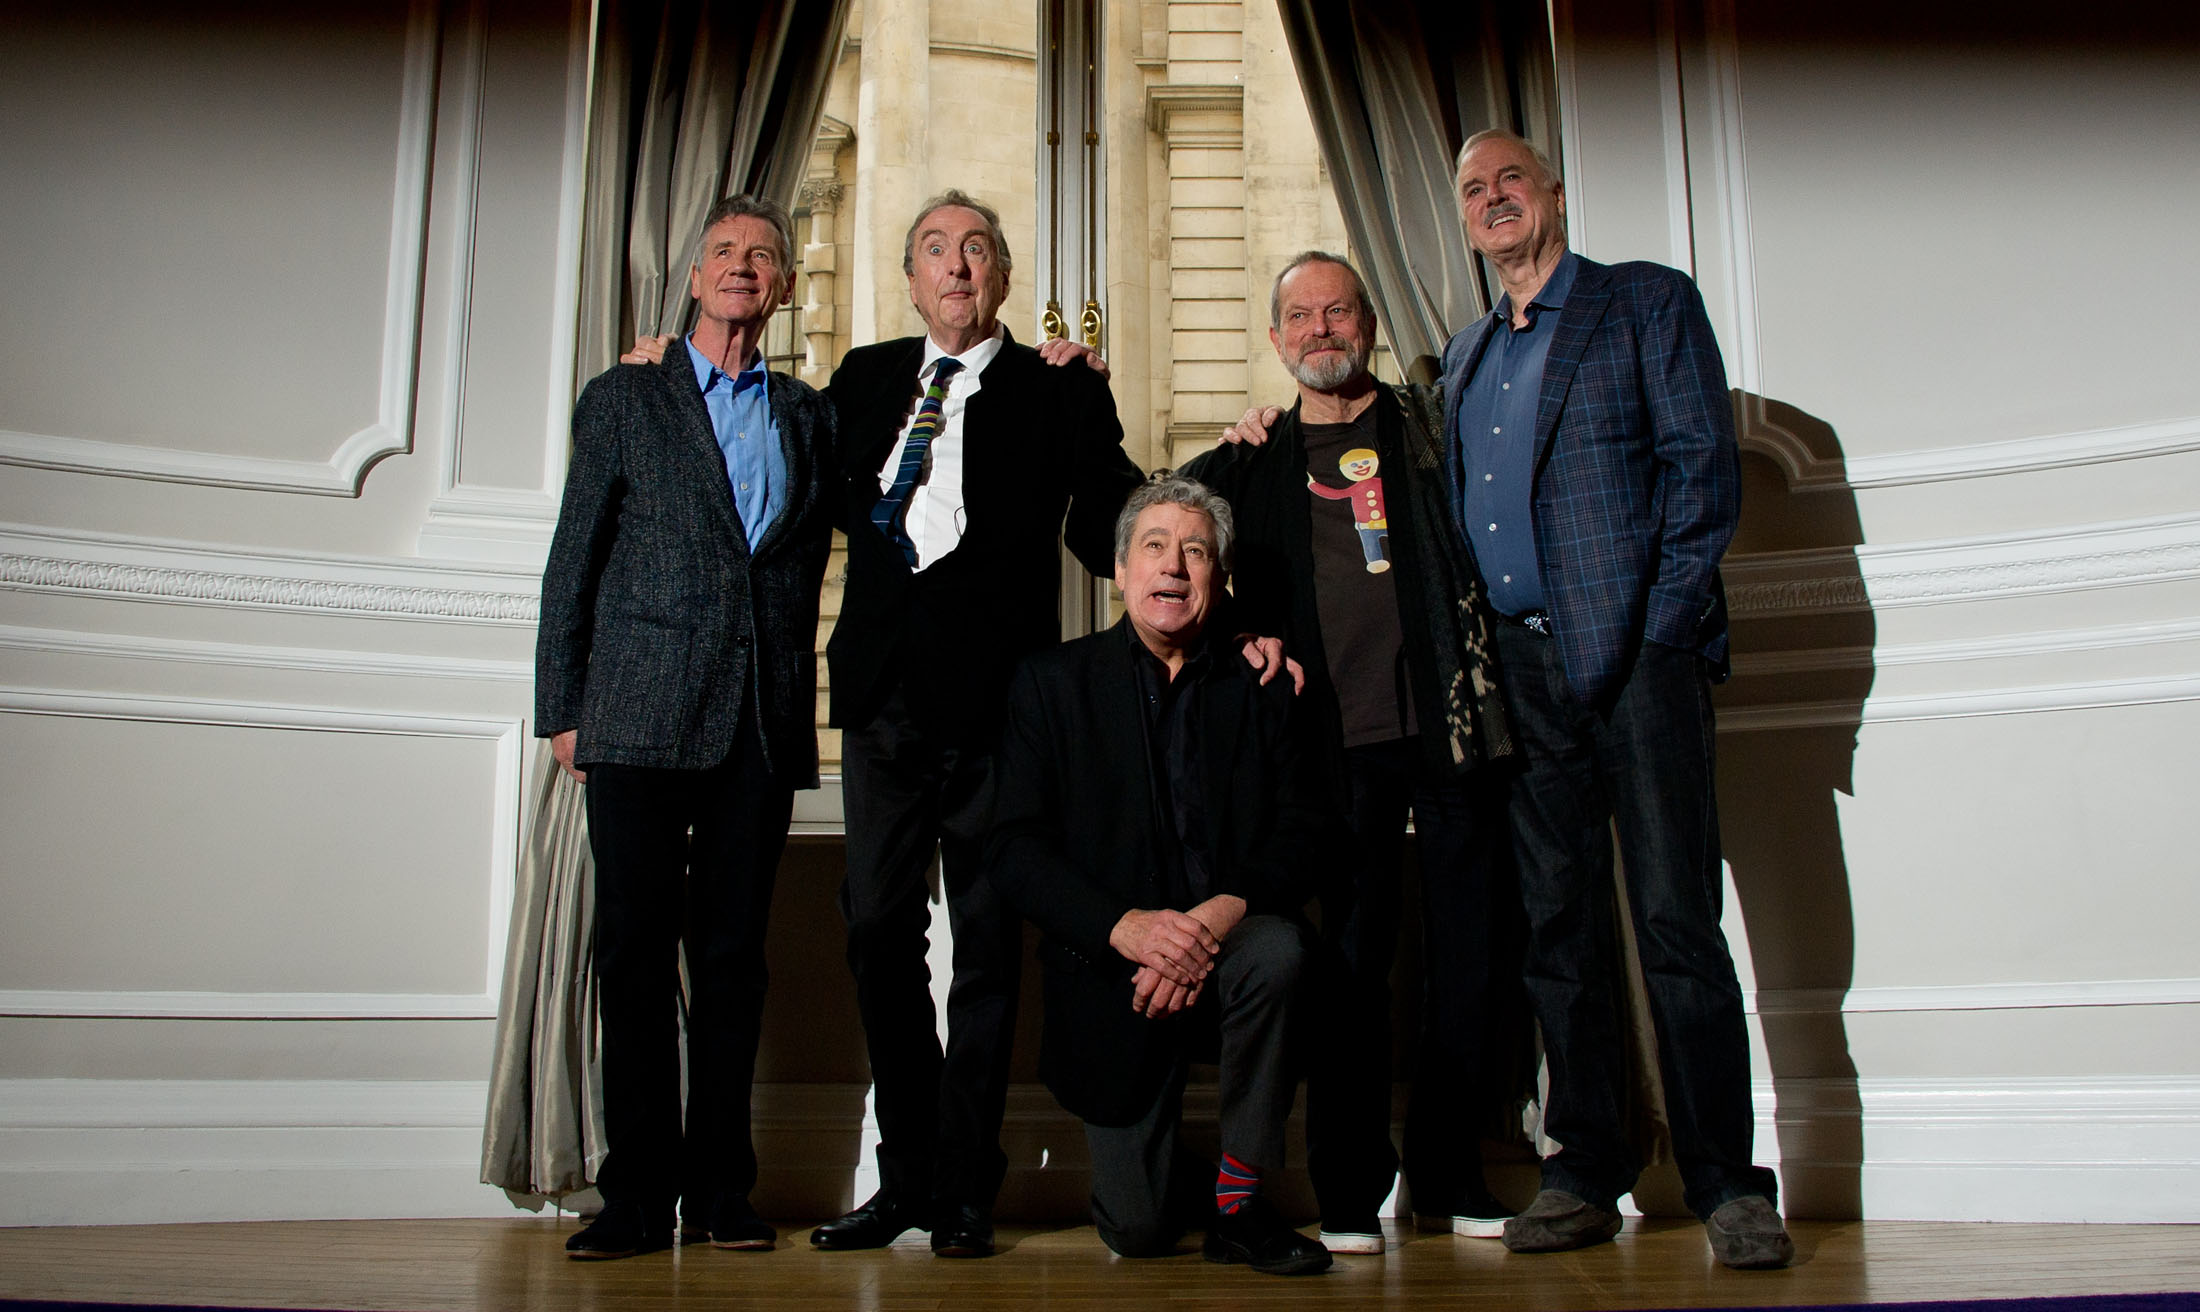 The untold truth of Monty Python